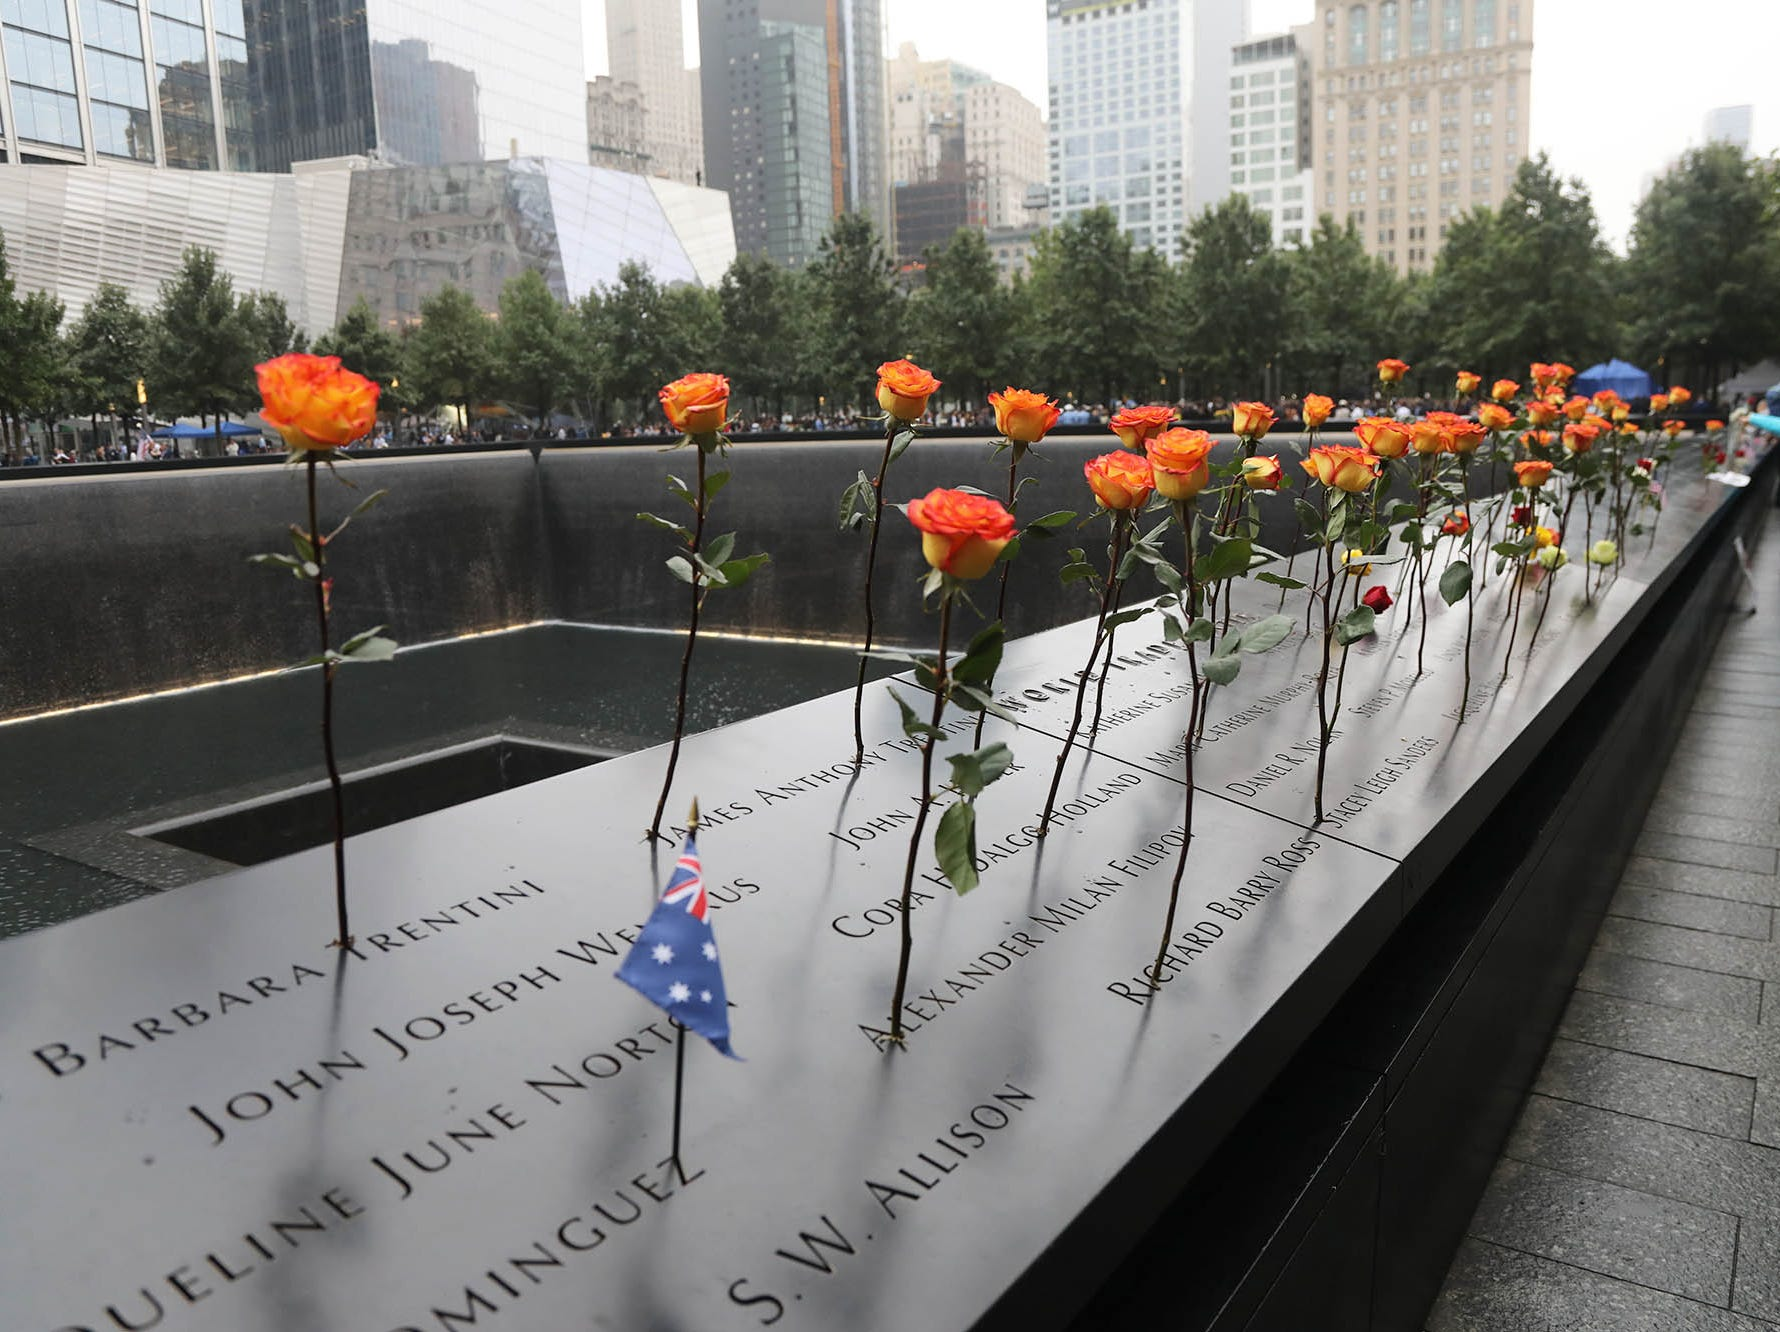 Flowers are placed on the names at the North Tower memorial during ceremonies at the National September 11 Memorial observing the 17th anniversary of the attacks that killed people in Manhattan, the Pentagon, Flight 93 and honoring those who died in the 1993 World Trade Center bombing.